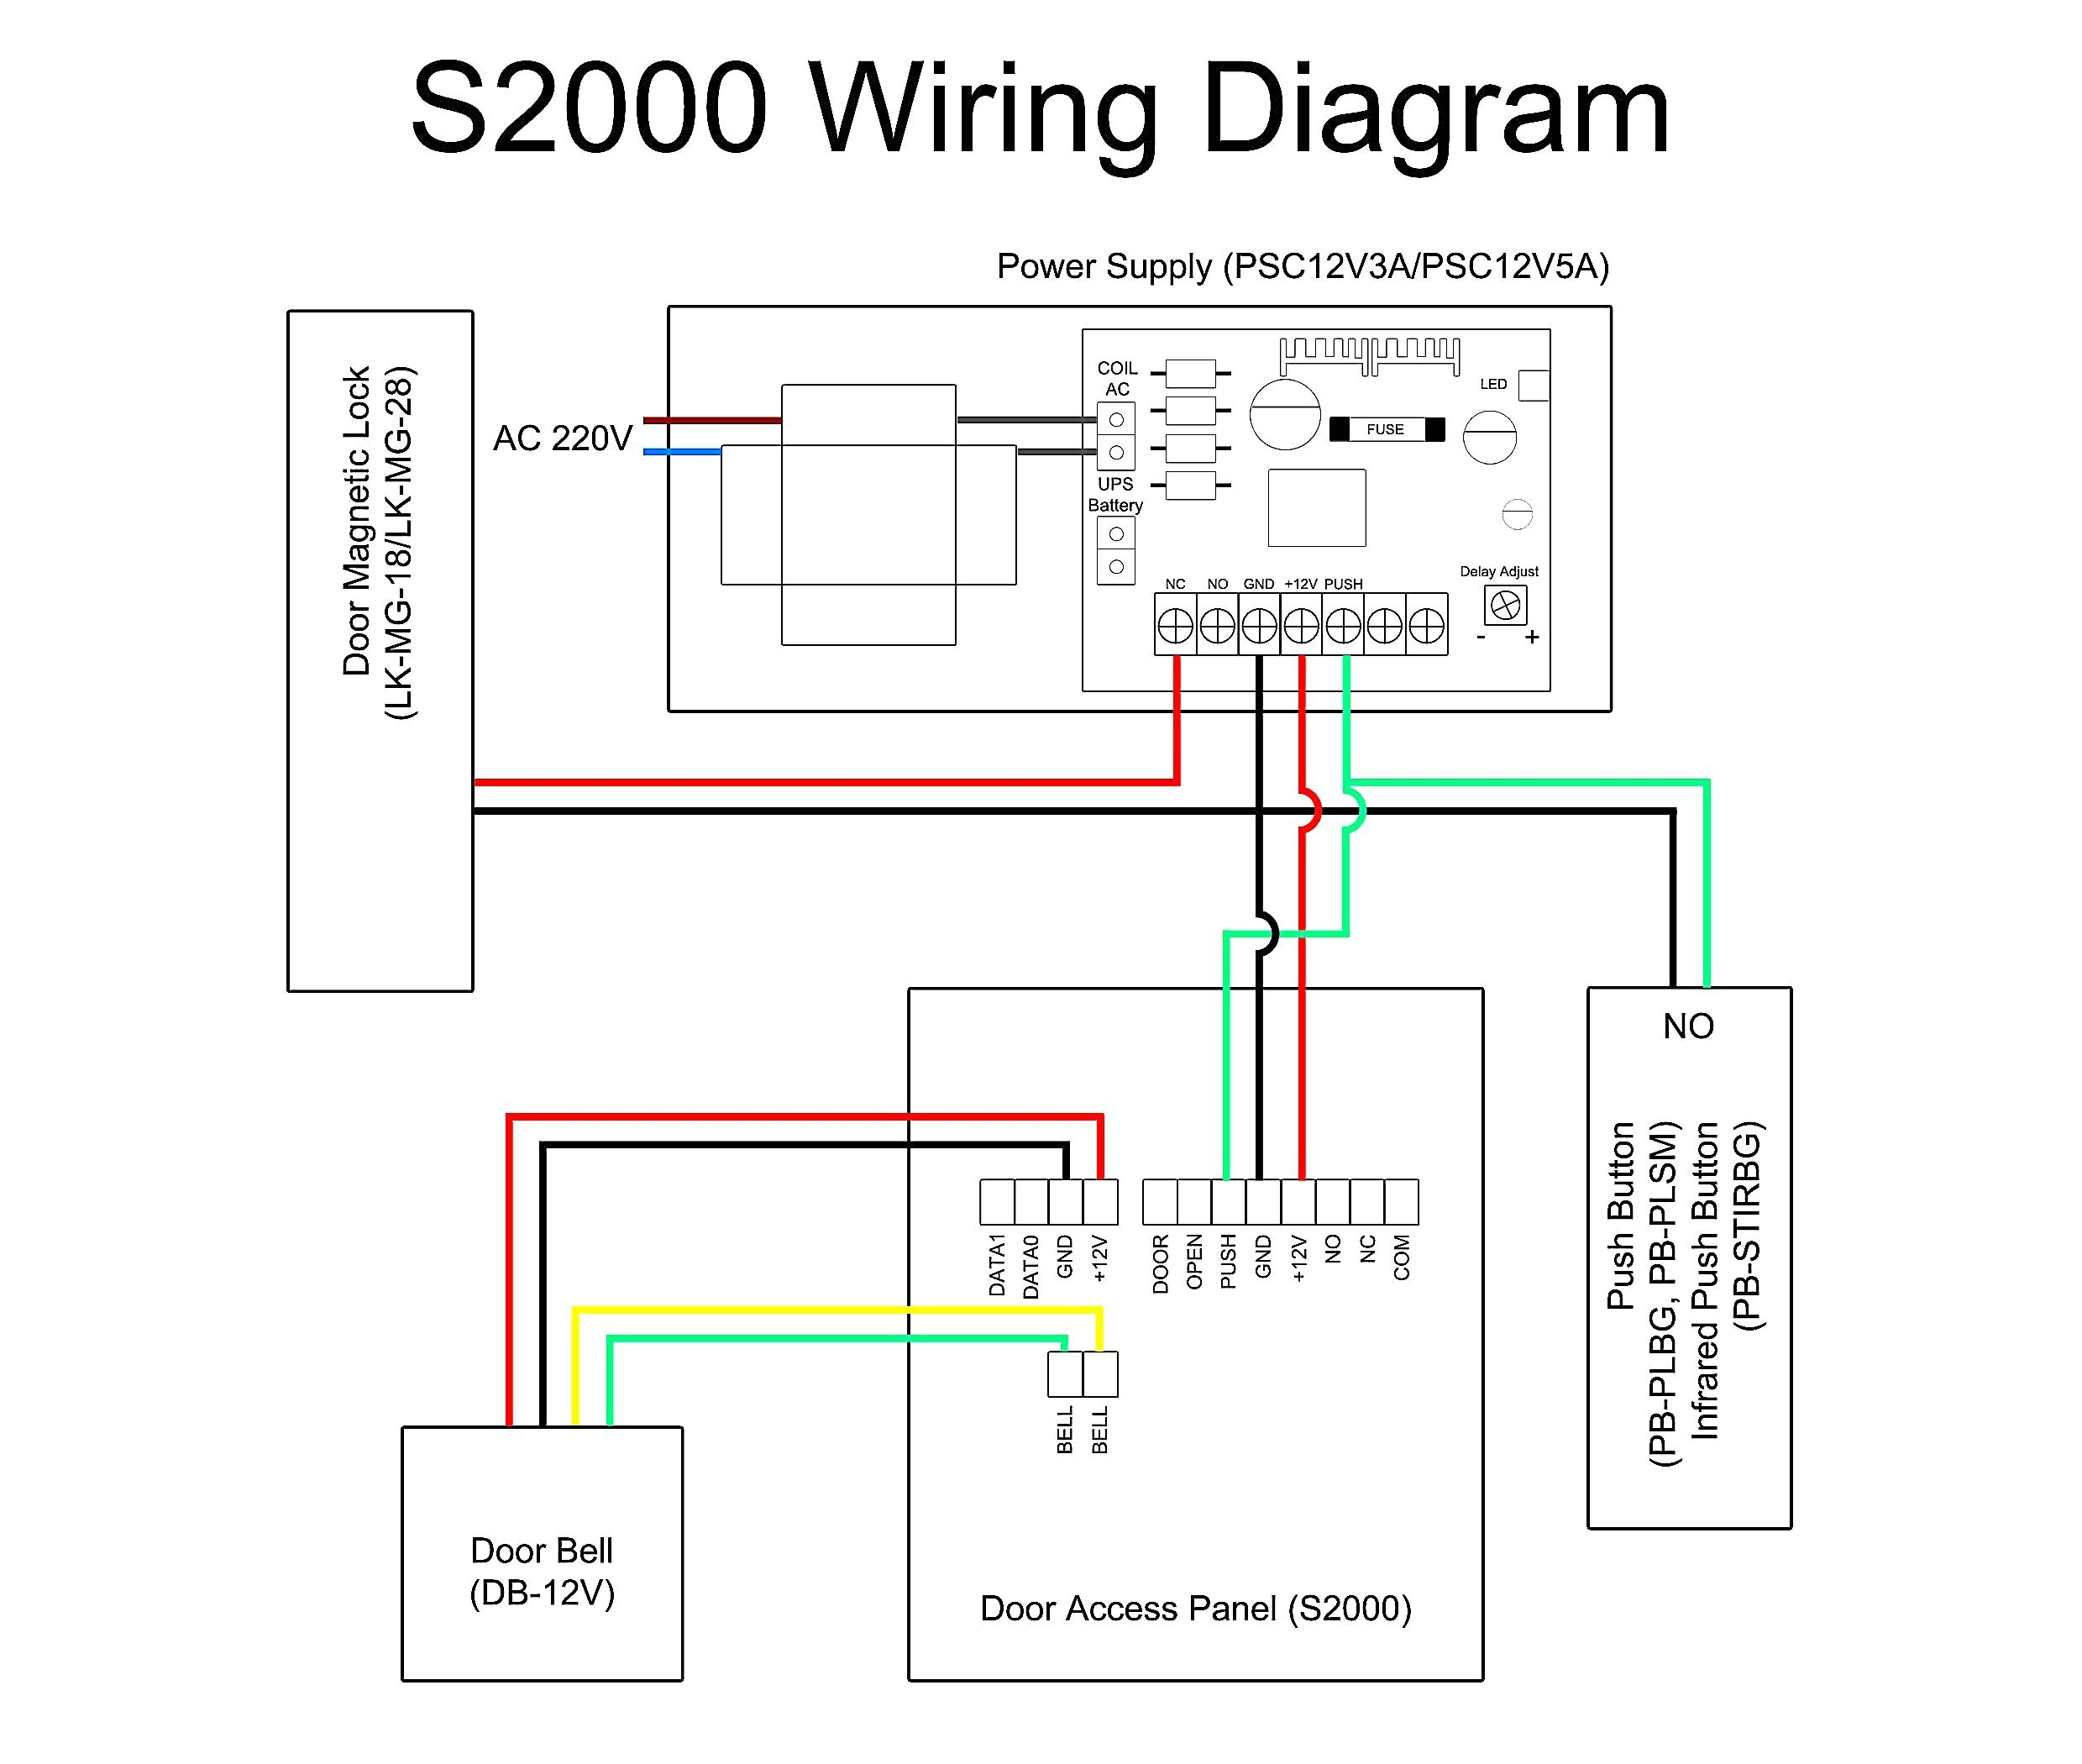 Diagram Pelco Ptz Wiring Diagram Full Version Hd Quality Wiring Diagram Diagramnixg Seagullsully It